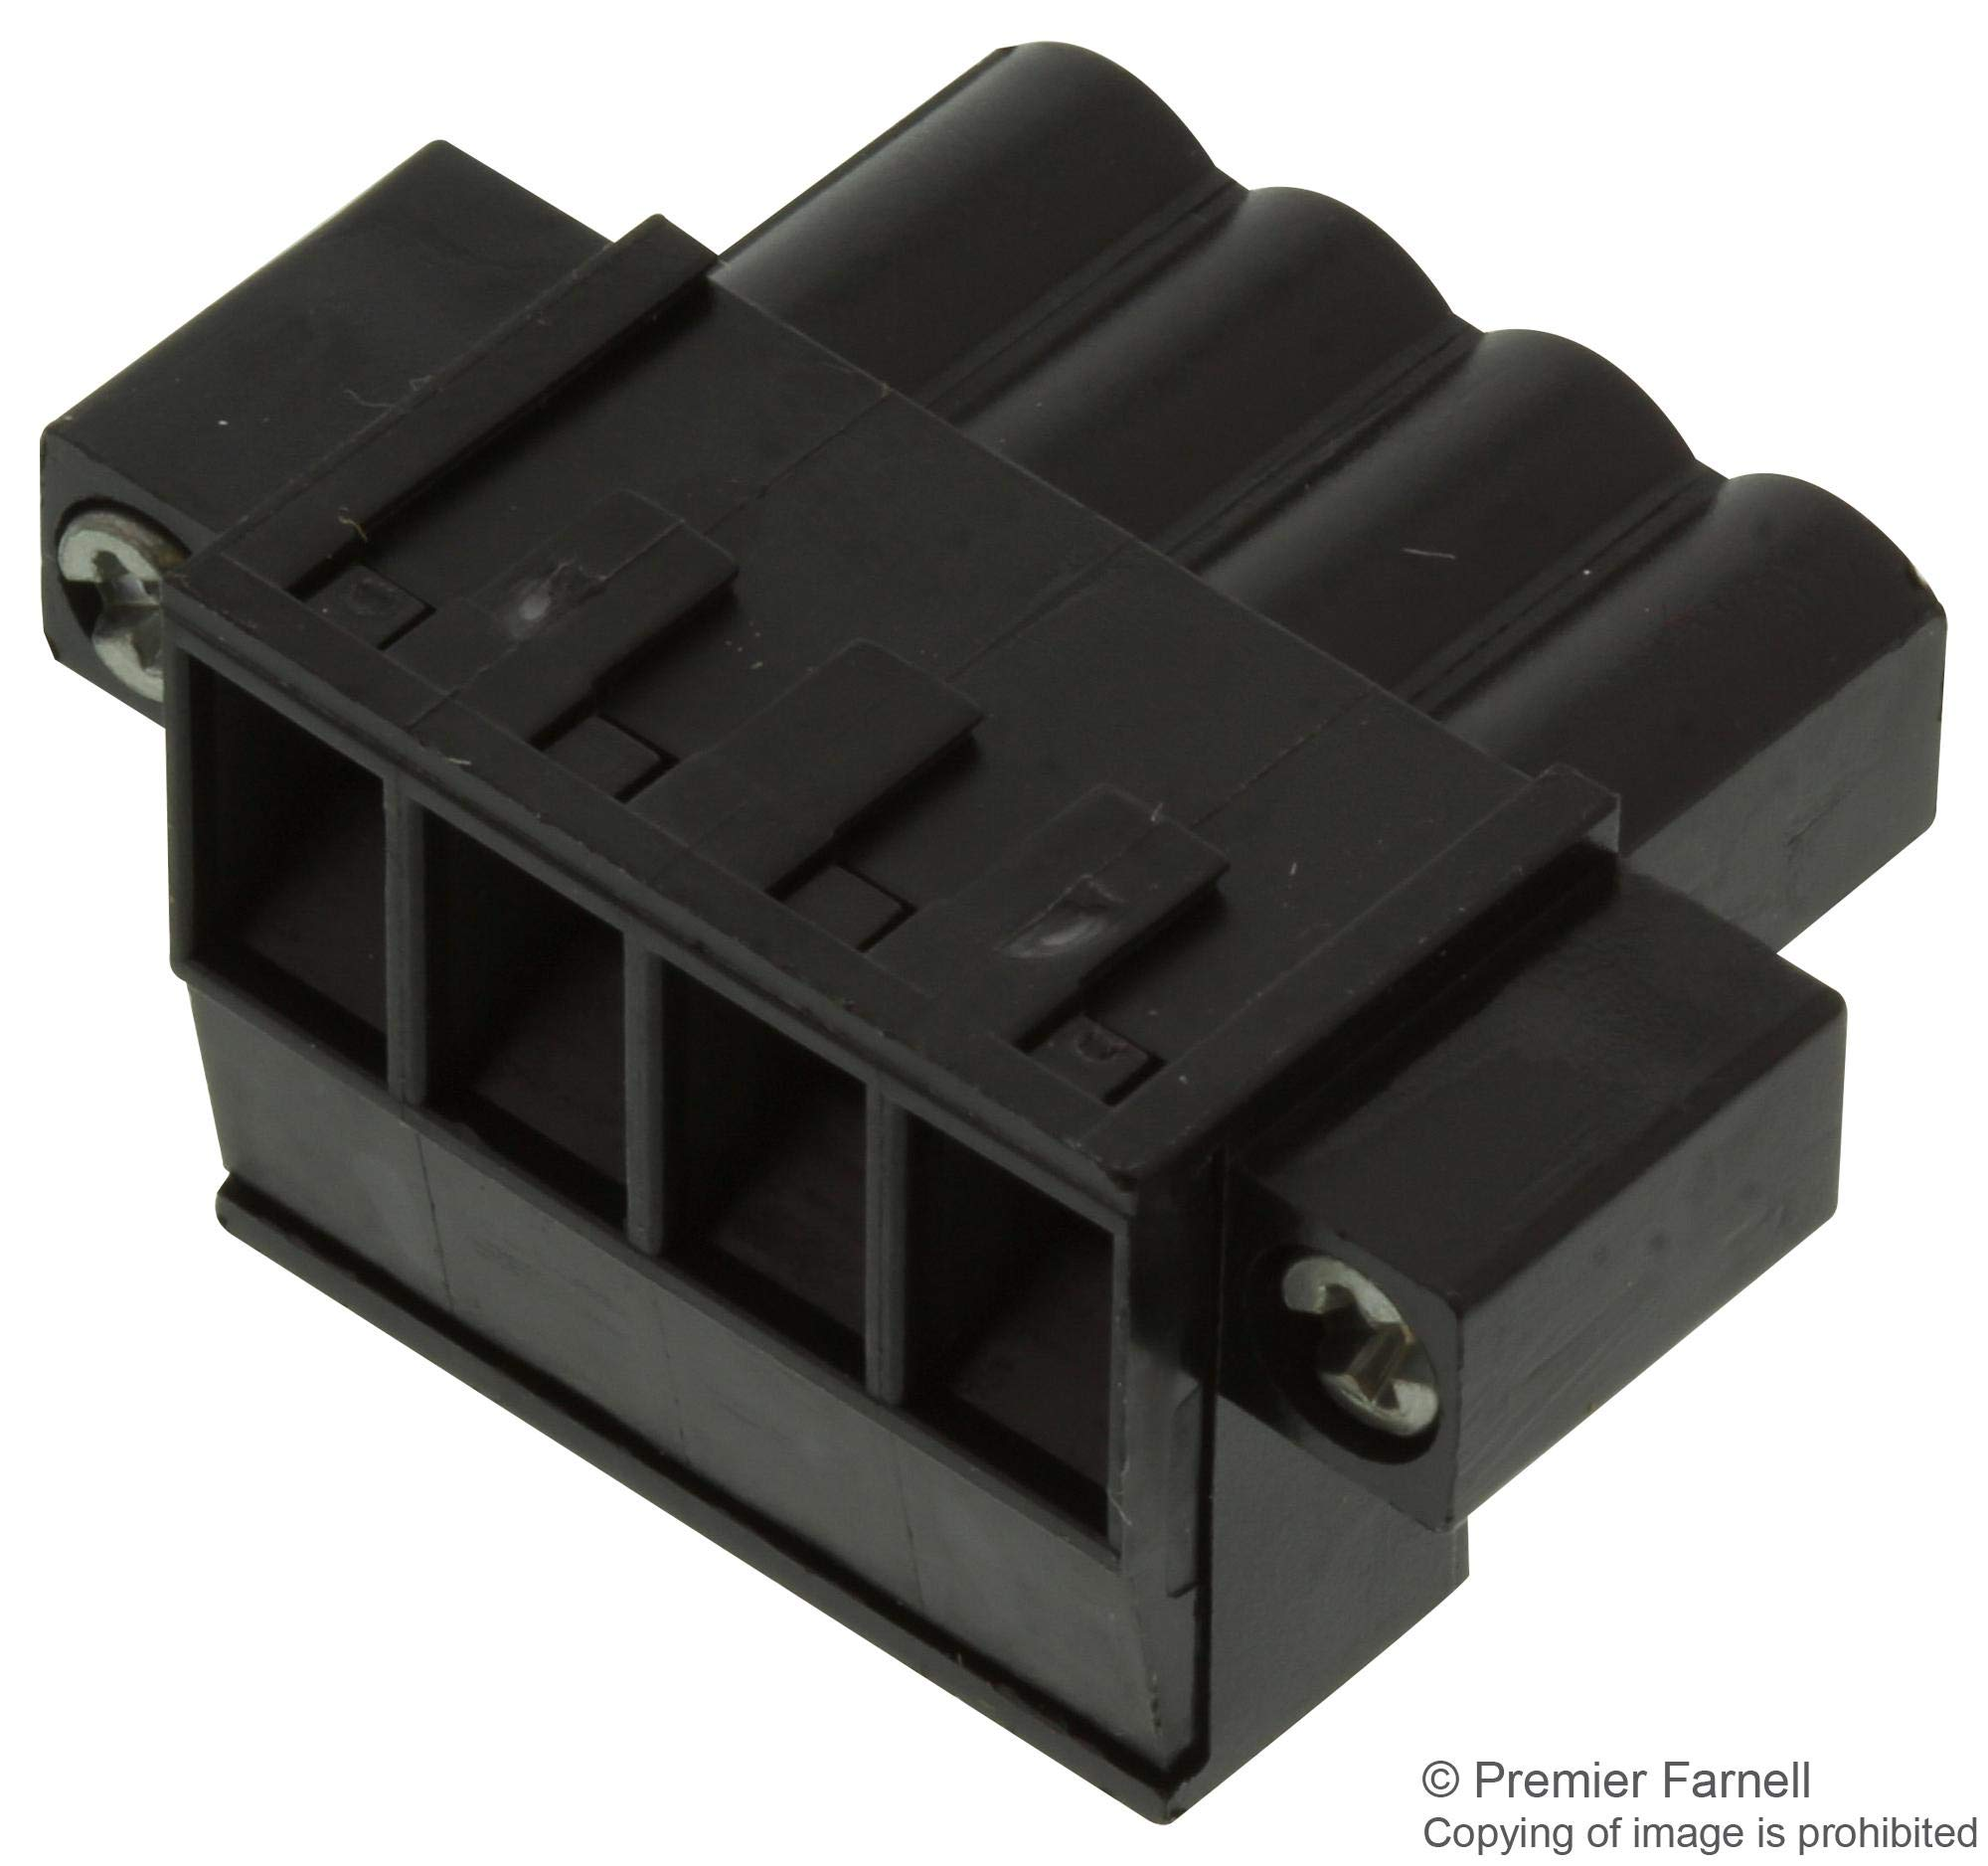 1803060000 - Pluggable Terminal Block, 5.08 mm, 4 Positions, 26 AWG, 12 AWG, 2.5 mm², Screw, (Pack of 20)